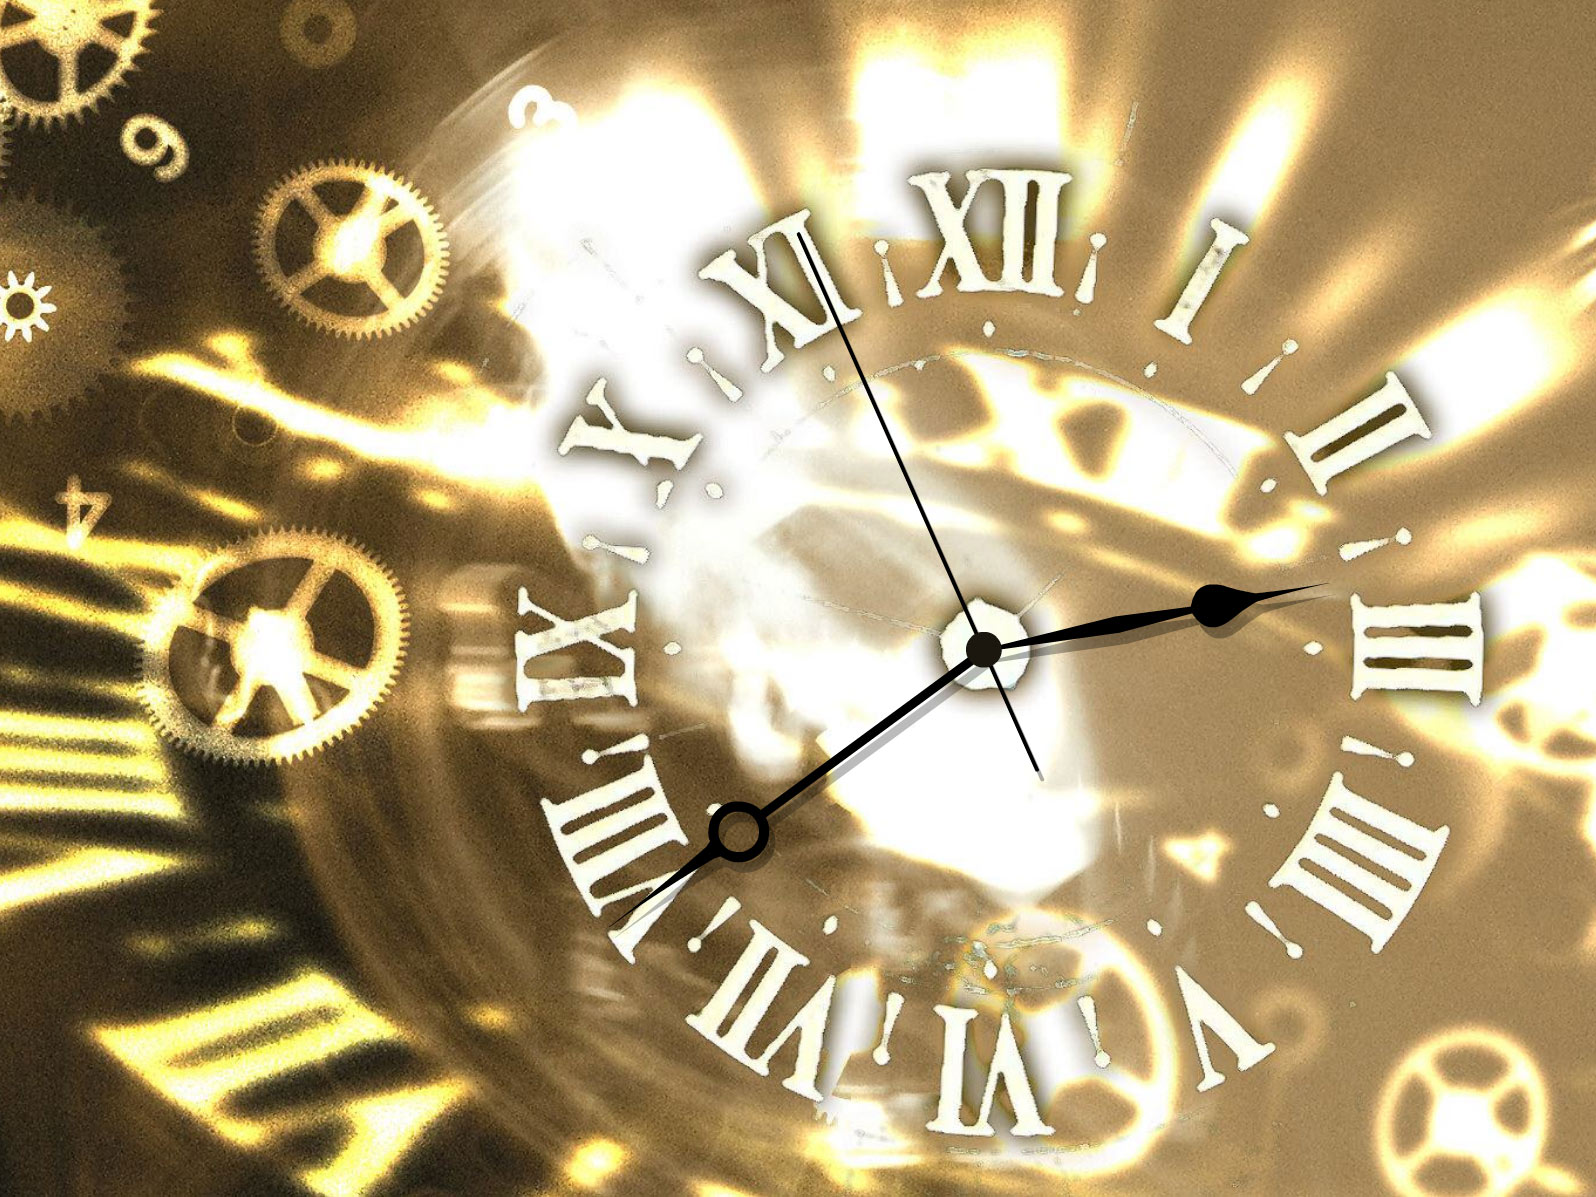 Let your hours with this gold clock screensaver be golden too!